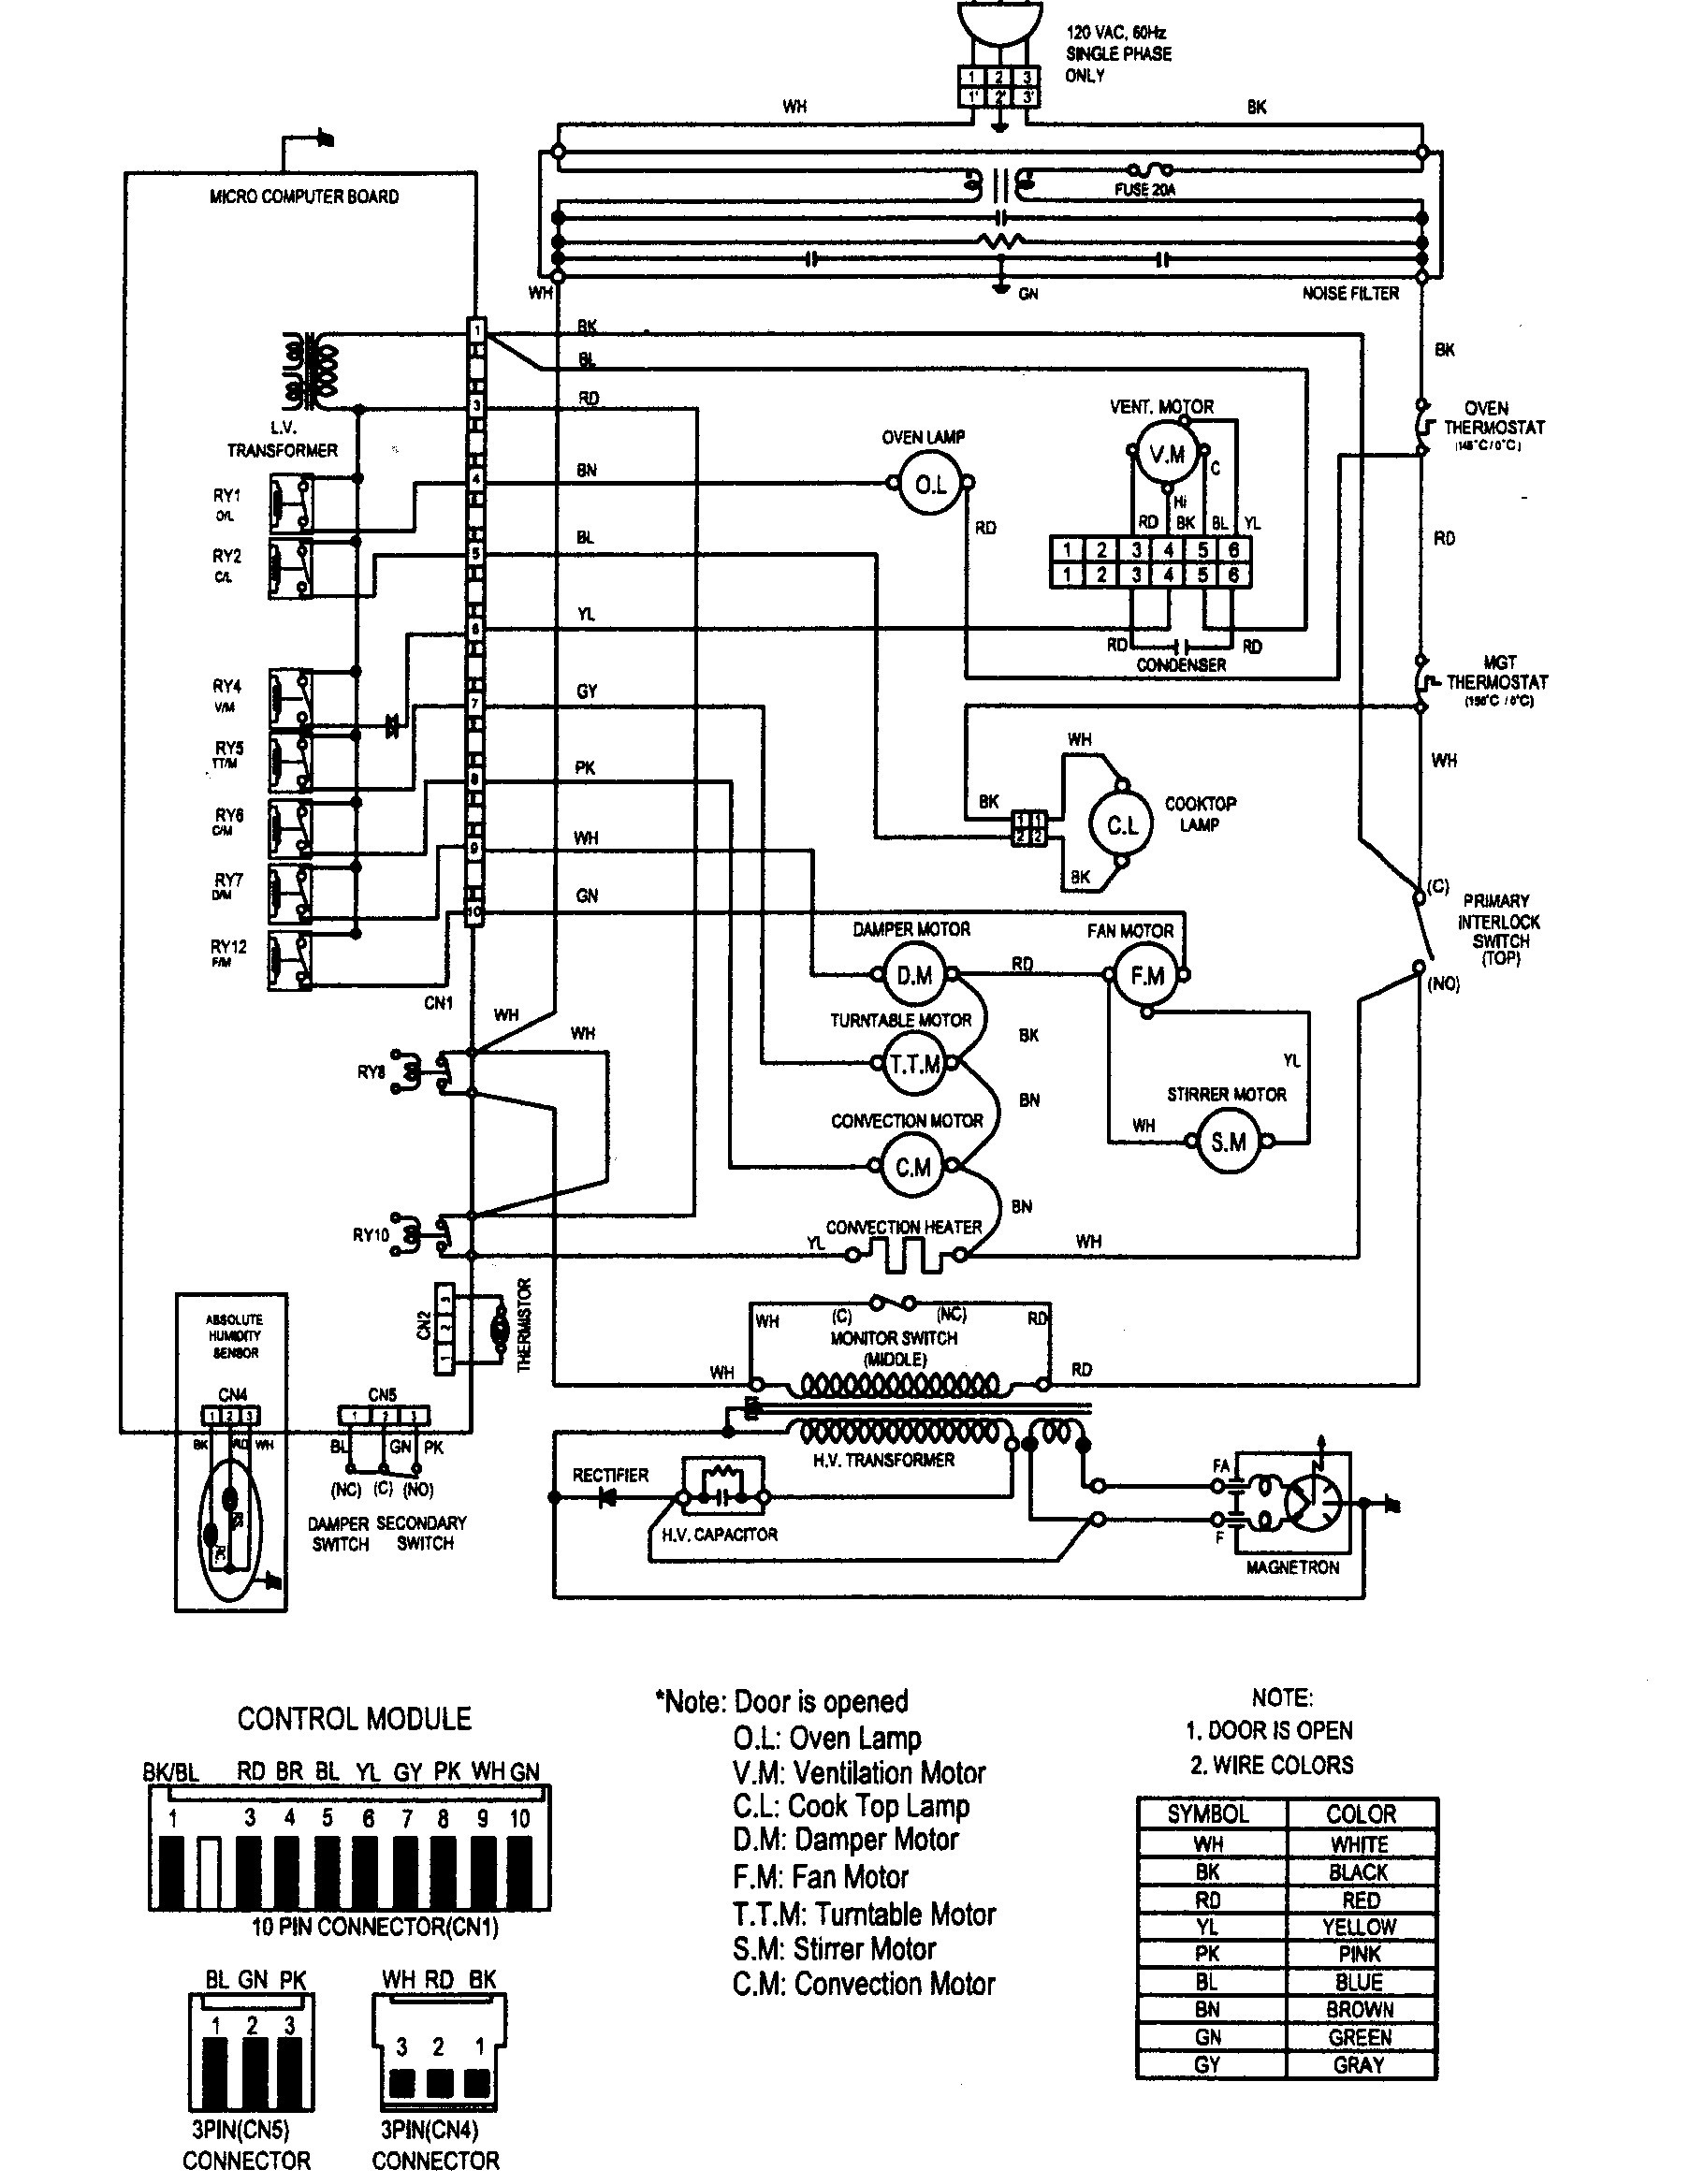 Whirlpool Oven Wiring Diagram - All Diagram Schematics on